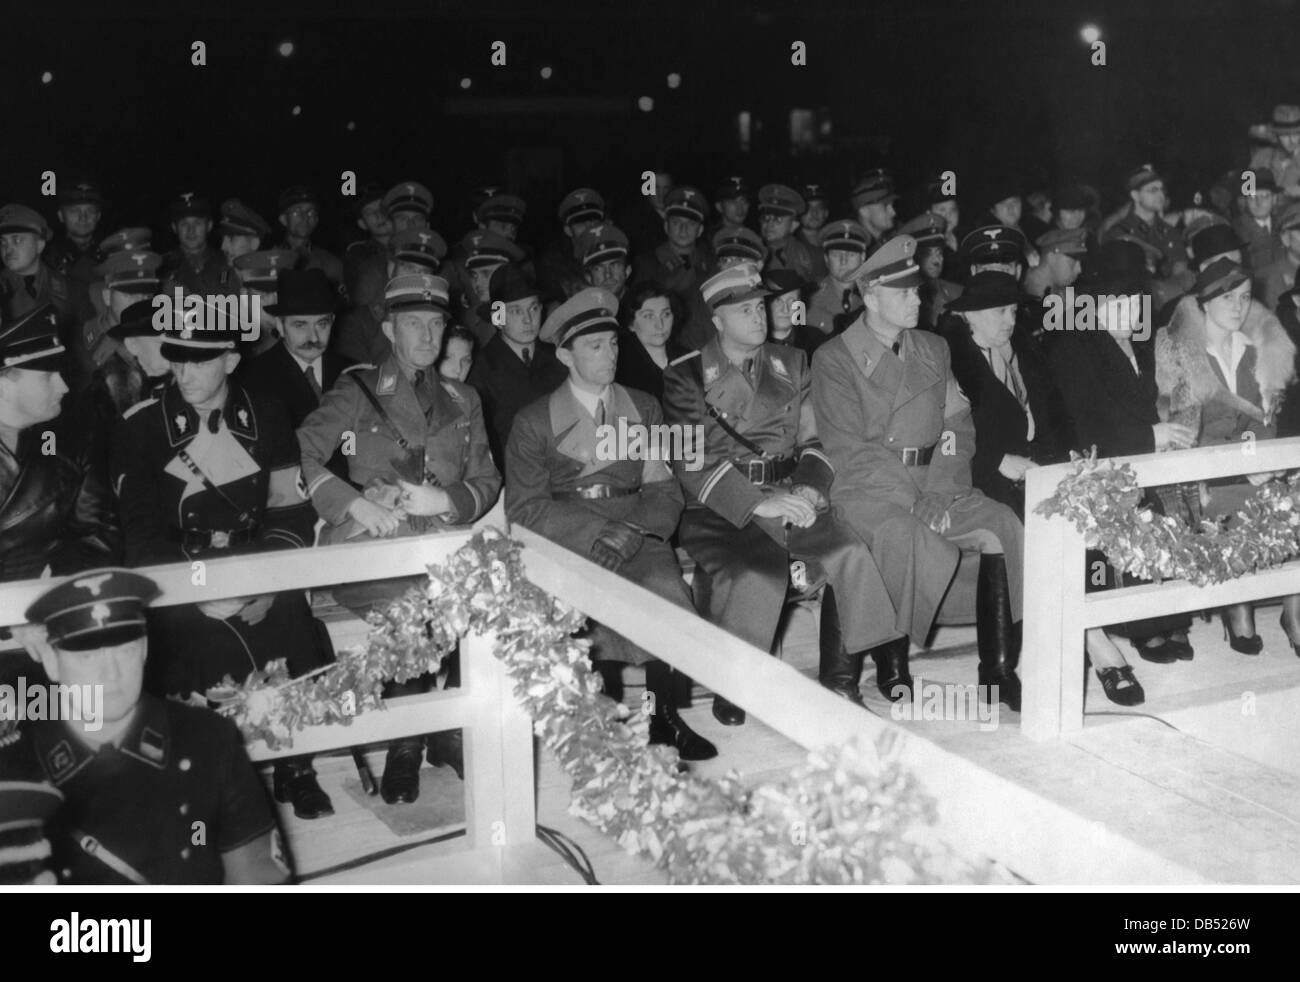 Nazism / National Socialism, event, celebration of the SA at th 30th birthday of Horst Wessel, Berlin, 9.10.1937, - Stock Image